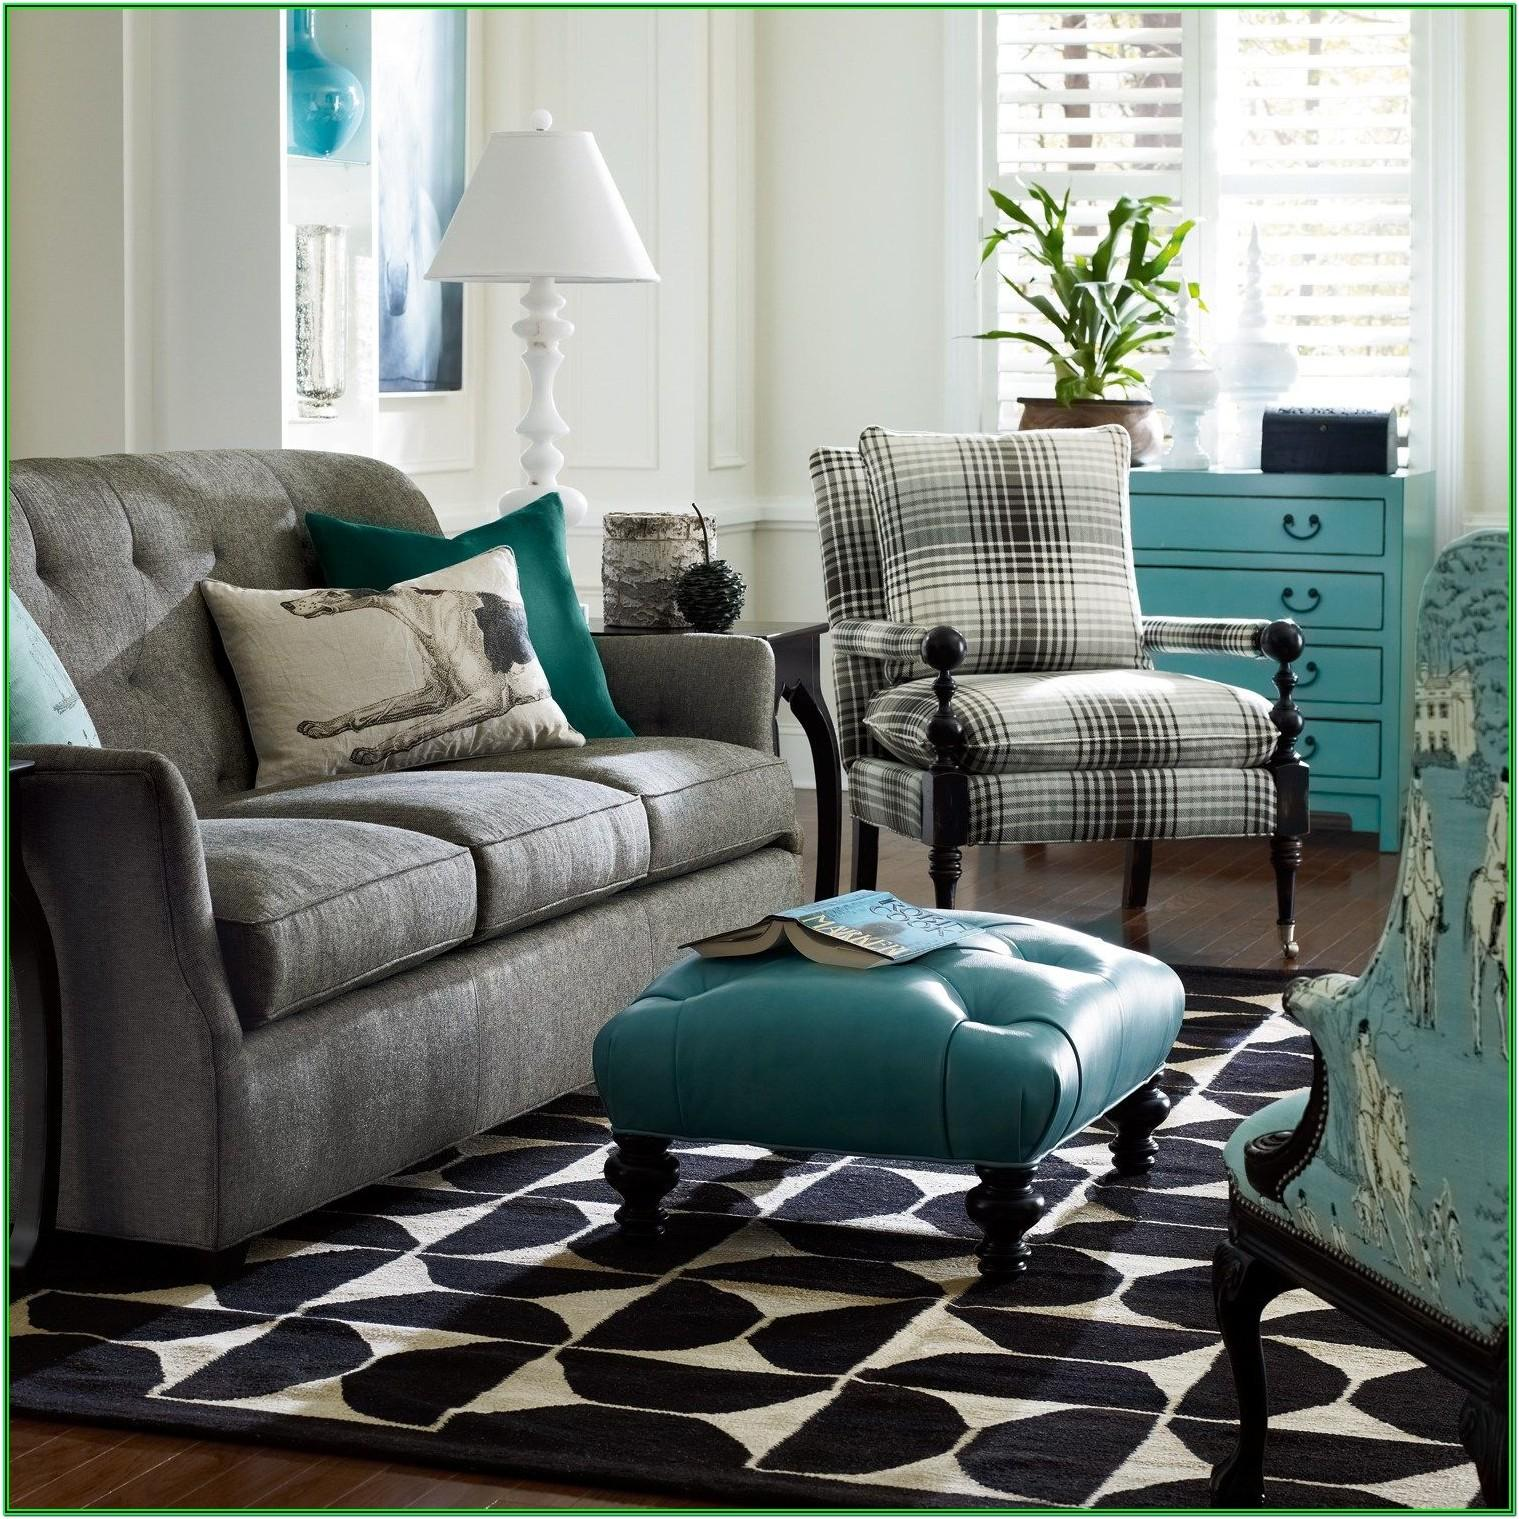 Accent Wall Teal And Grey Living Room Ideas